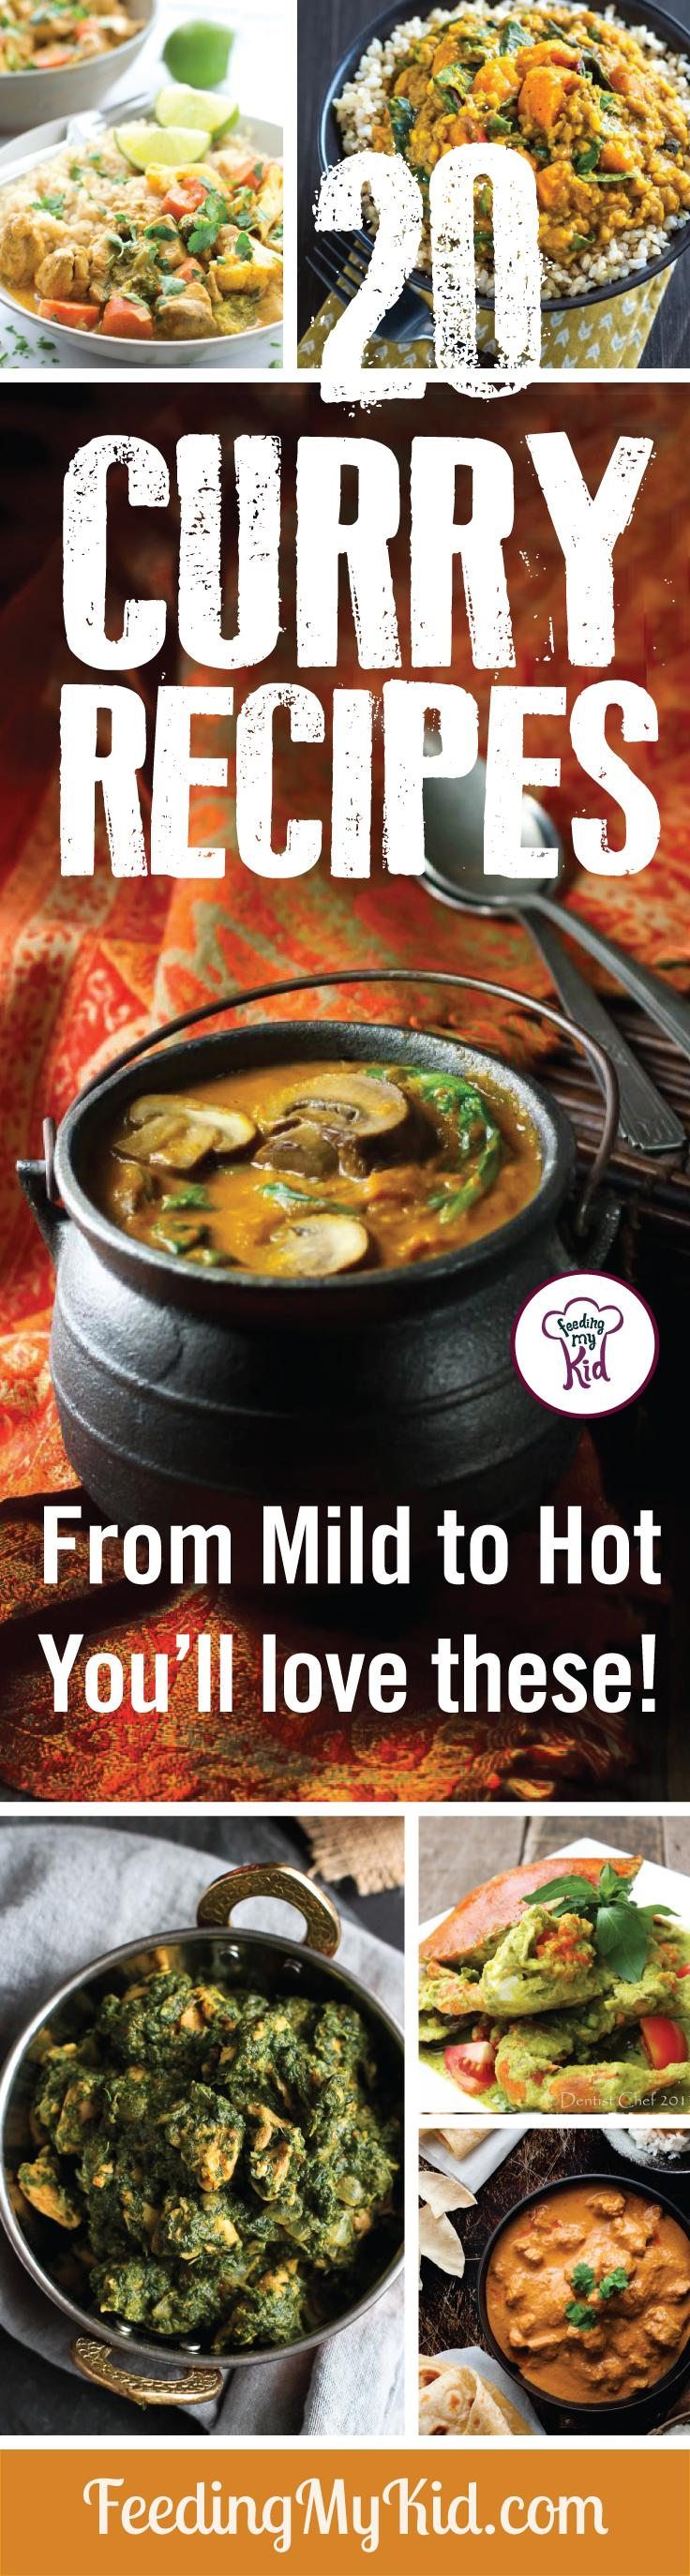 We put together these amazing hot and mild curry recipes. From chickpea and butternut squash curry to baby eggplant curry. You'll love these! Feeding My Kid is a filled with all the information you need about how to raise your kids, from healthy tips to nutritious recipes. #curry #recipes #curryrecipe